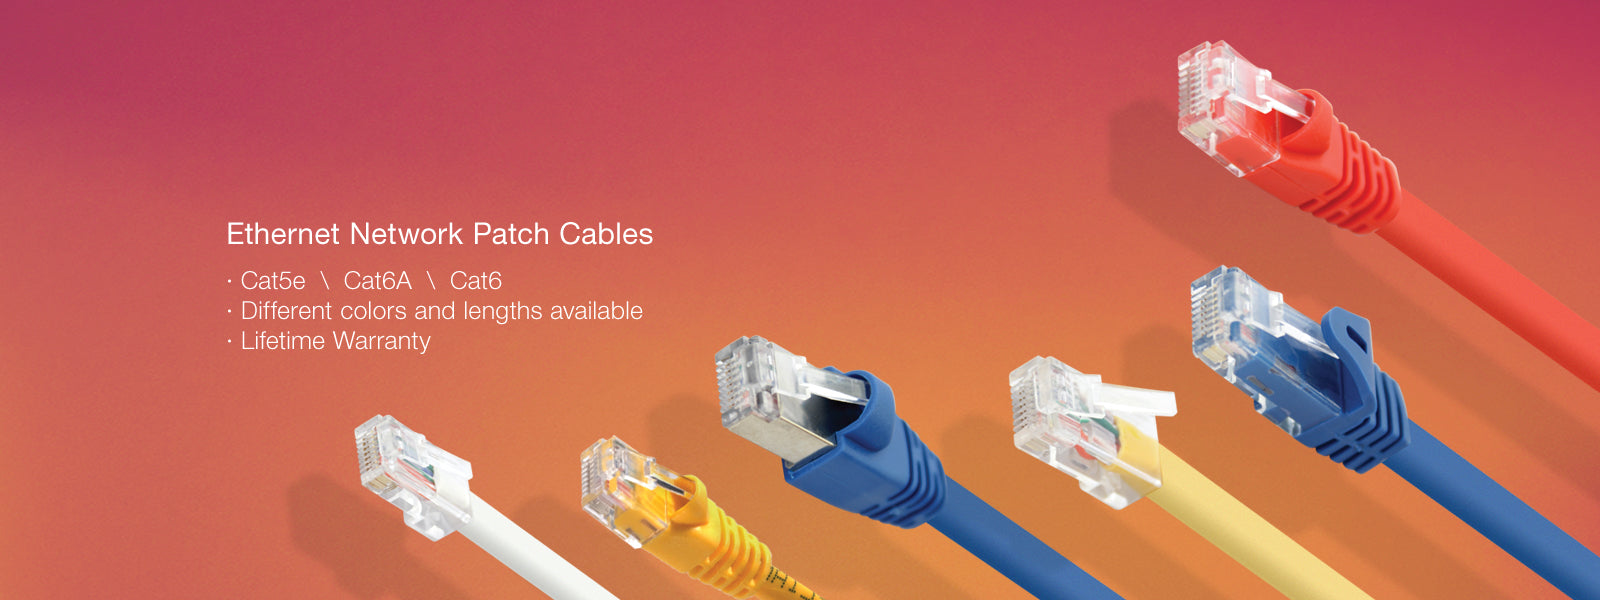 Ethernet Patch Cables Omnigates Tagged Cat6 Utp Cat 5e Flexible Wire With Conductor Cable Rj45 6 Network Gold Plated Utp05 15ft No Reviews From 060